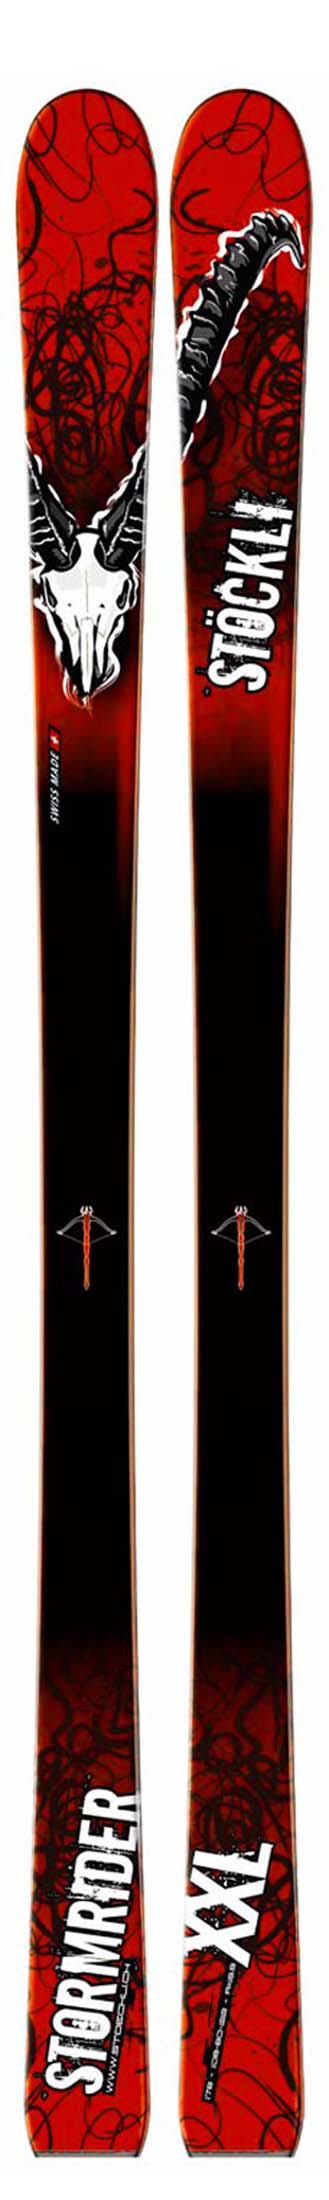 Stockli 2009 Stormrider XXL Skis (No Bindings / Flat) NEW !!  162cm